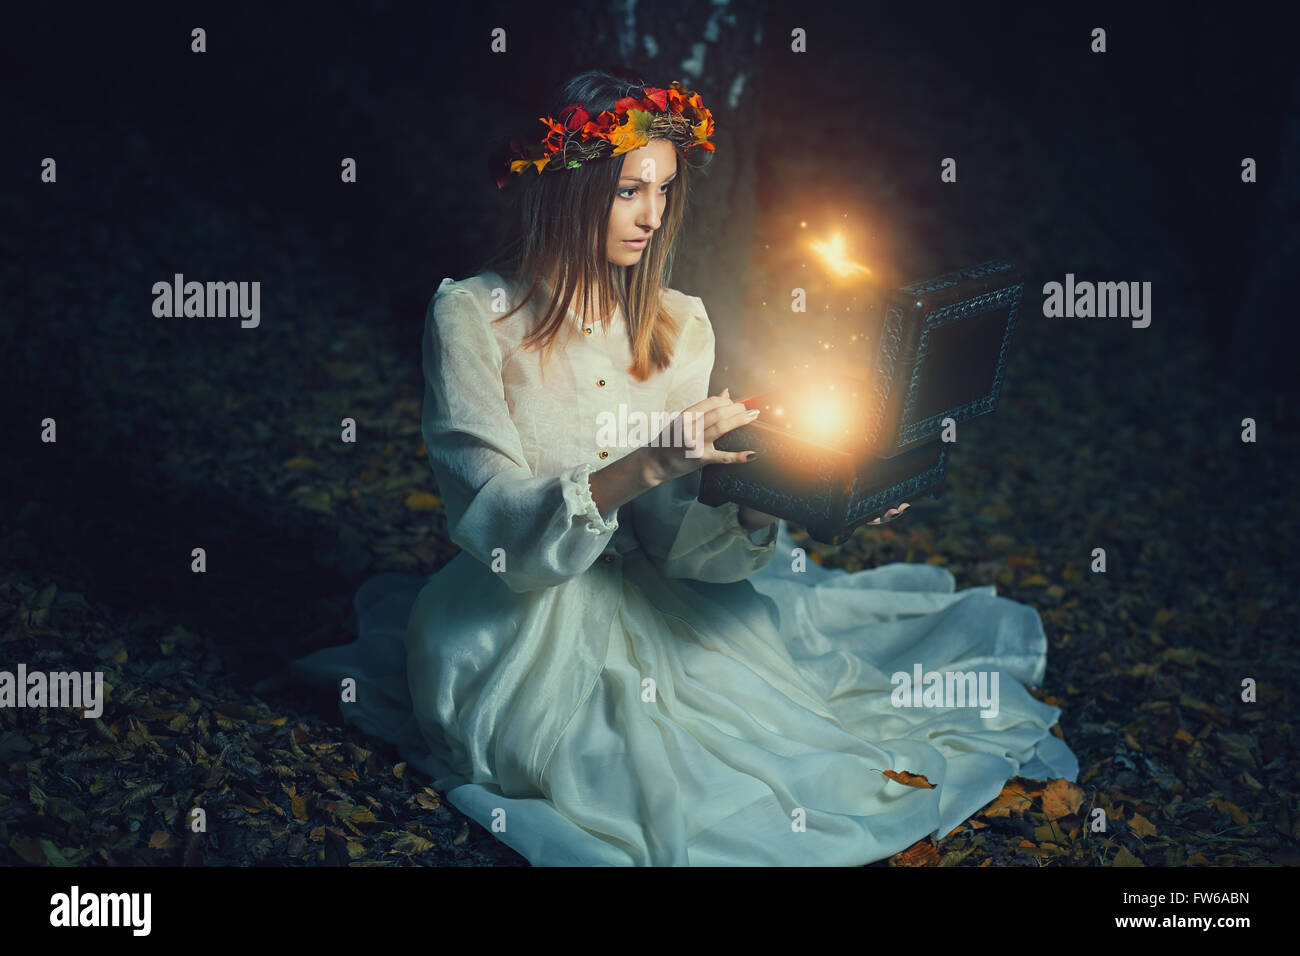 Beautiful woman opens a magical box full of fairies . Fantasy concept - Stock Image